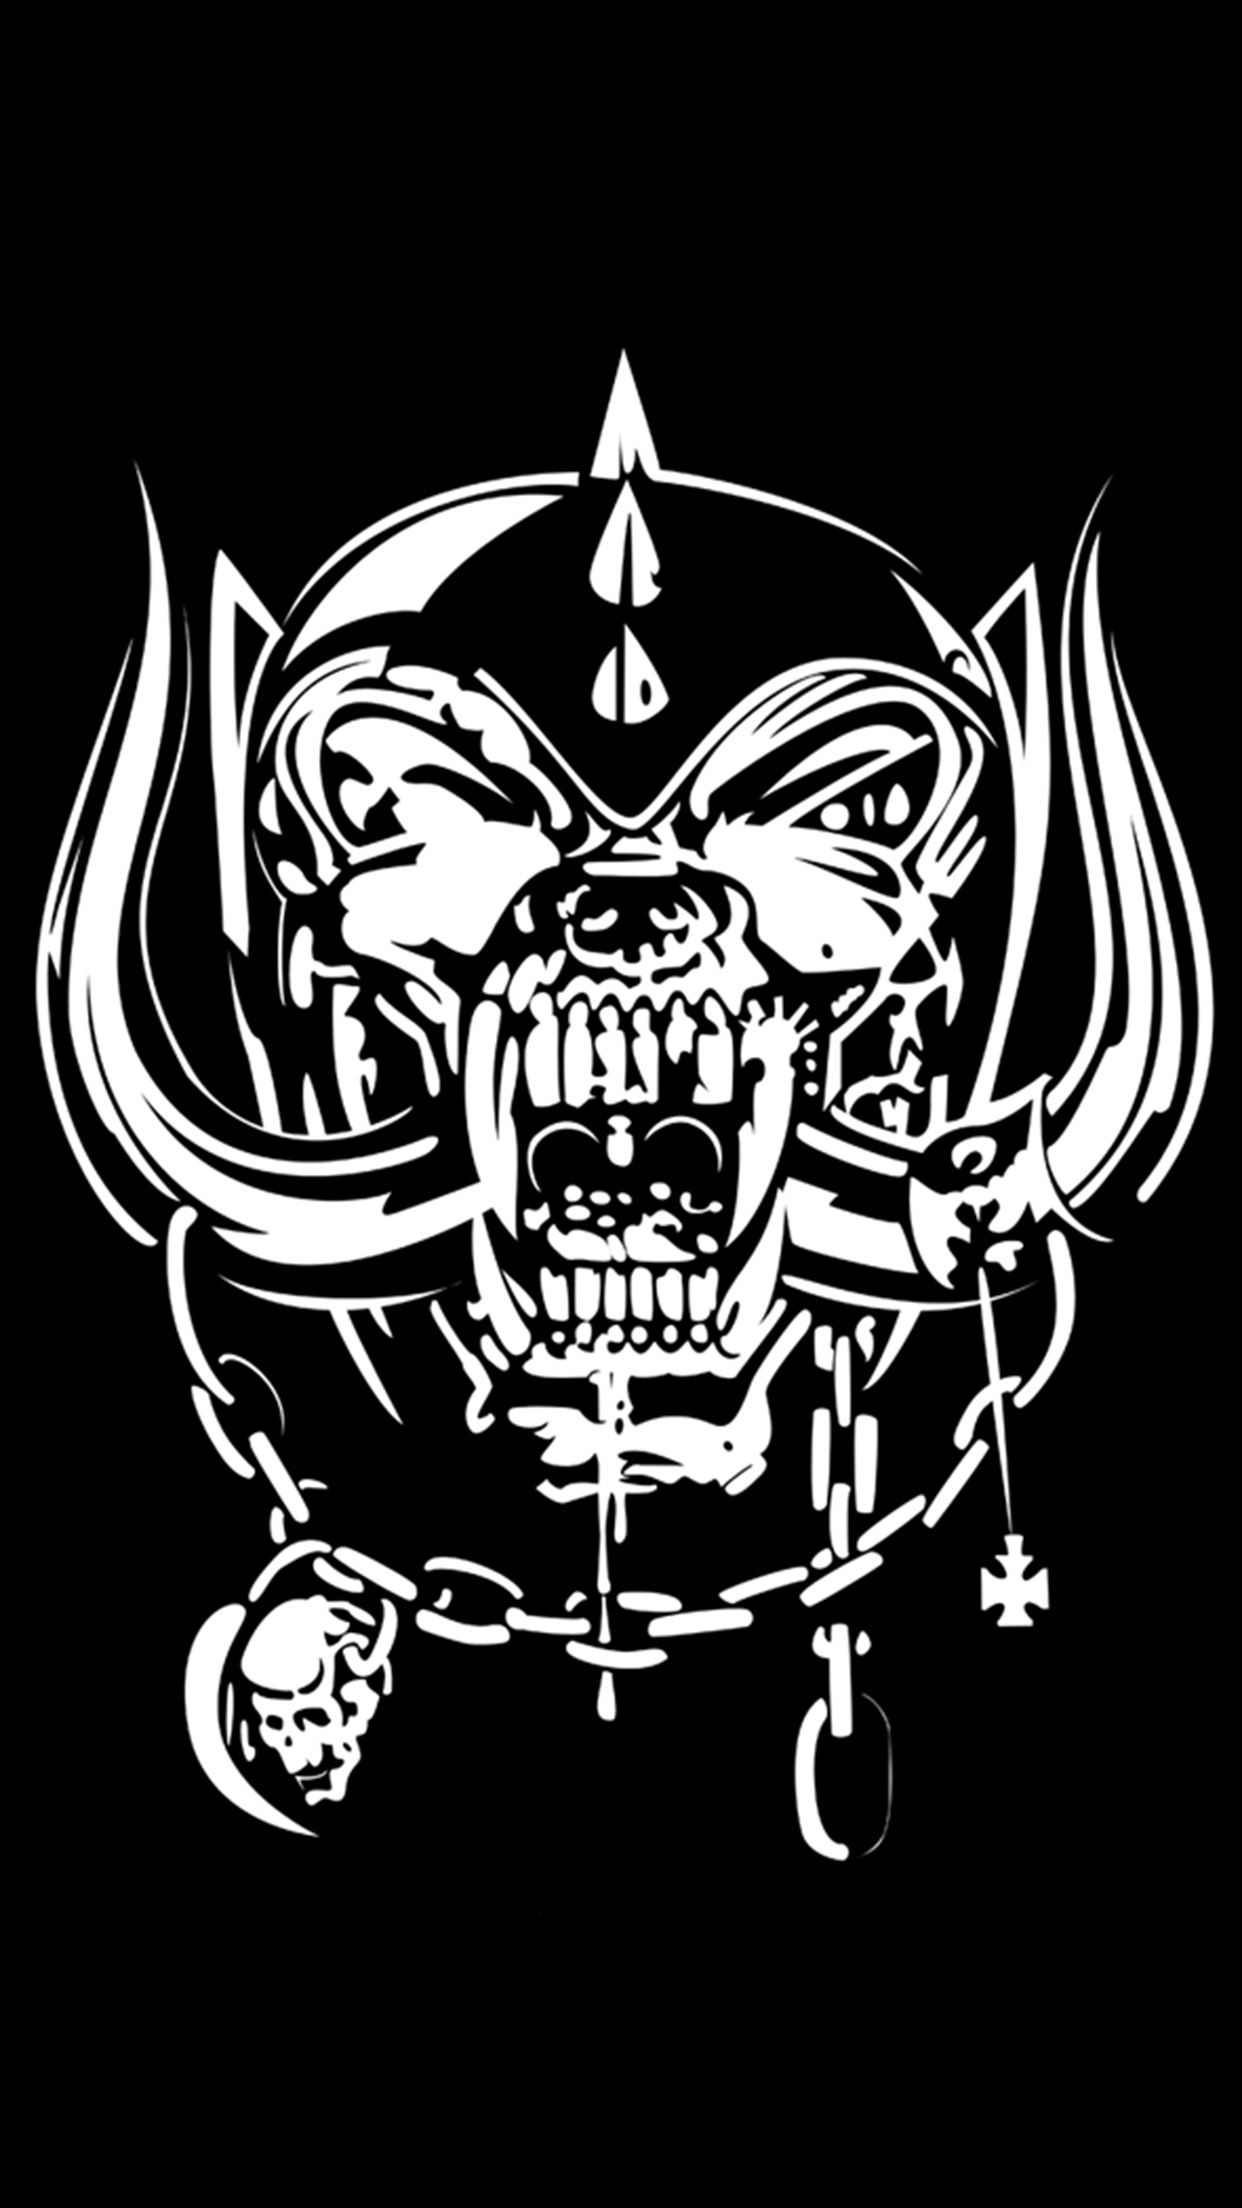 Motorhead Logo 3wallpapers Iphone Parallax Heavy Metal Art Metal Tattoo Heavy Metal Music